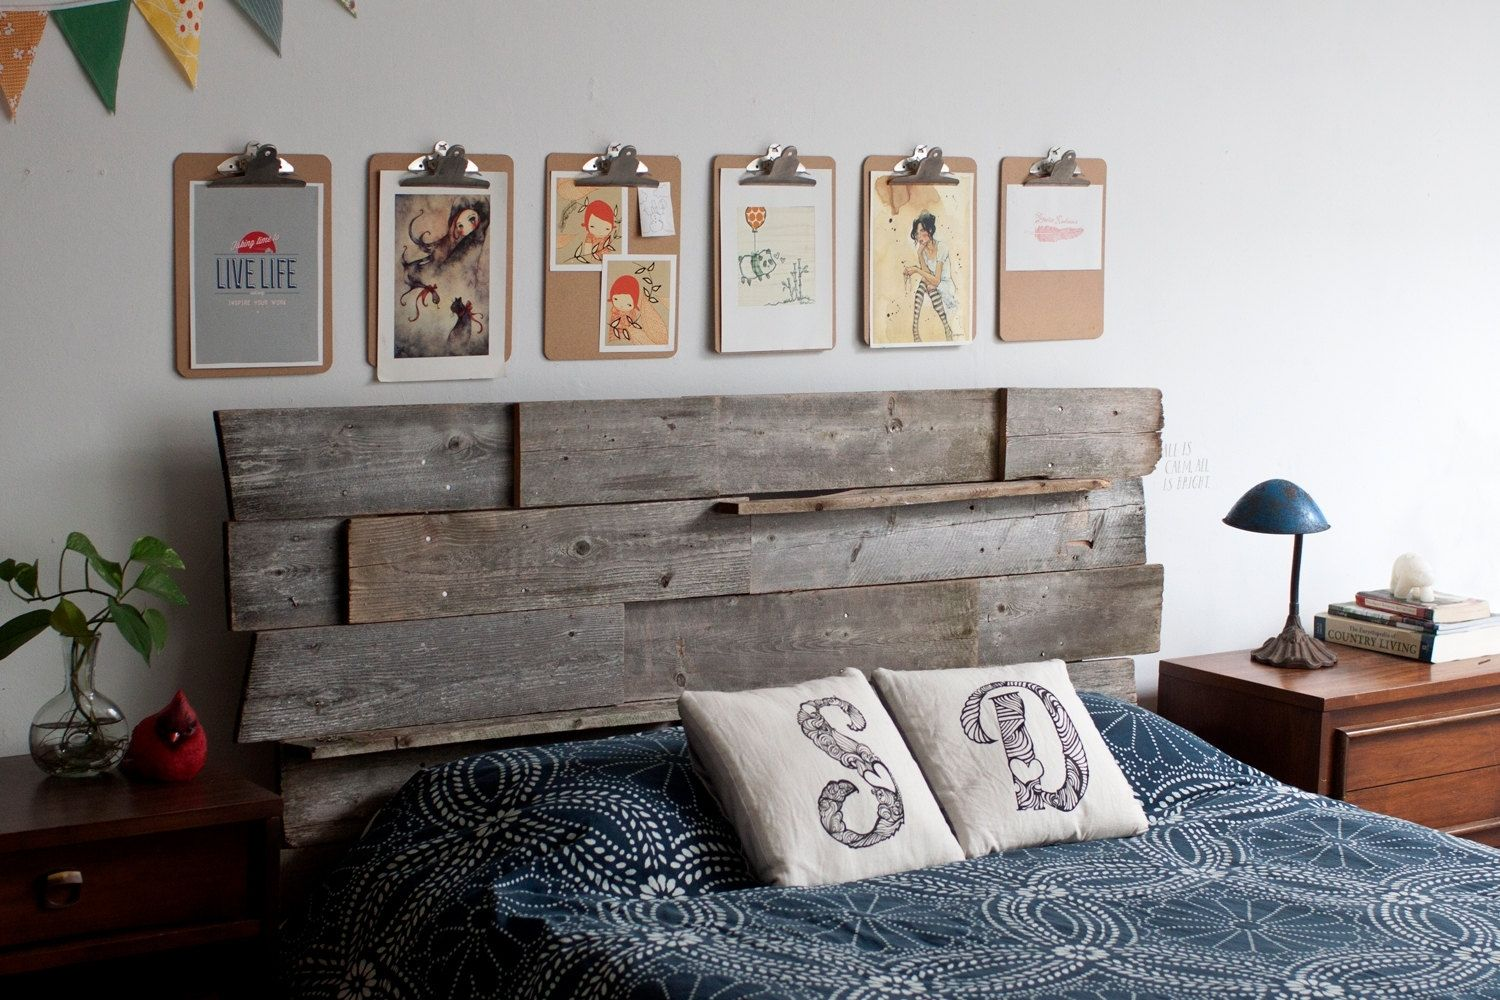 Custom Made Reclaimed Wood Head Board Or Backdrop - Custom Made Reclaimed Wood Head Board Or Backdrop By Whisky Ginger